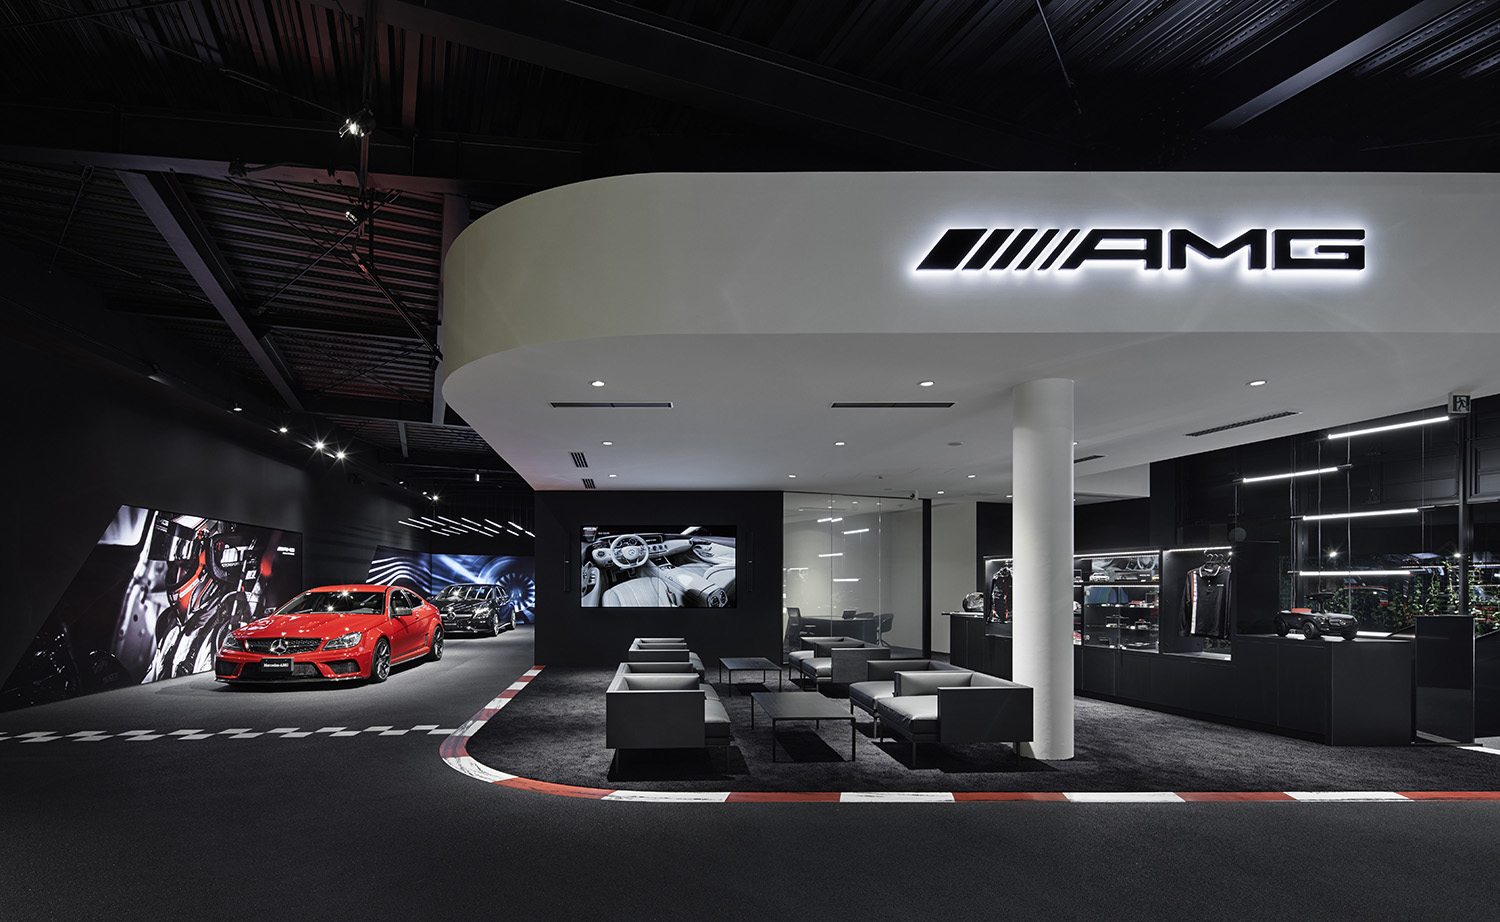 small areas  and lounges offering different possibilities for seller-client discussions Daimler AG